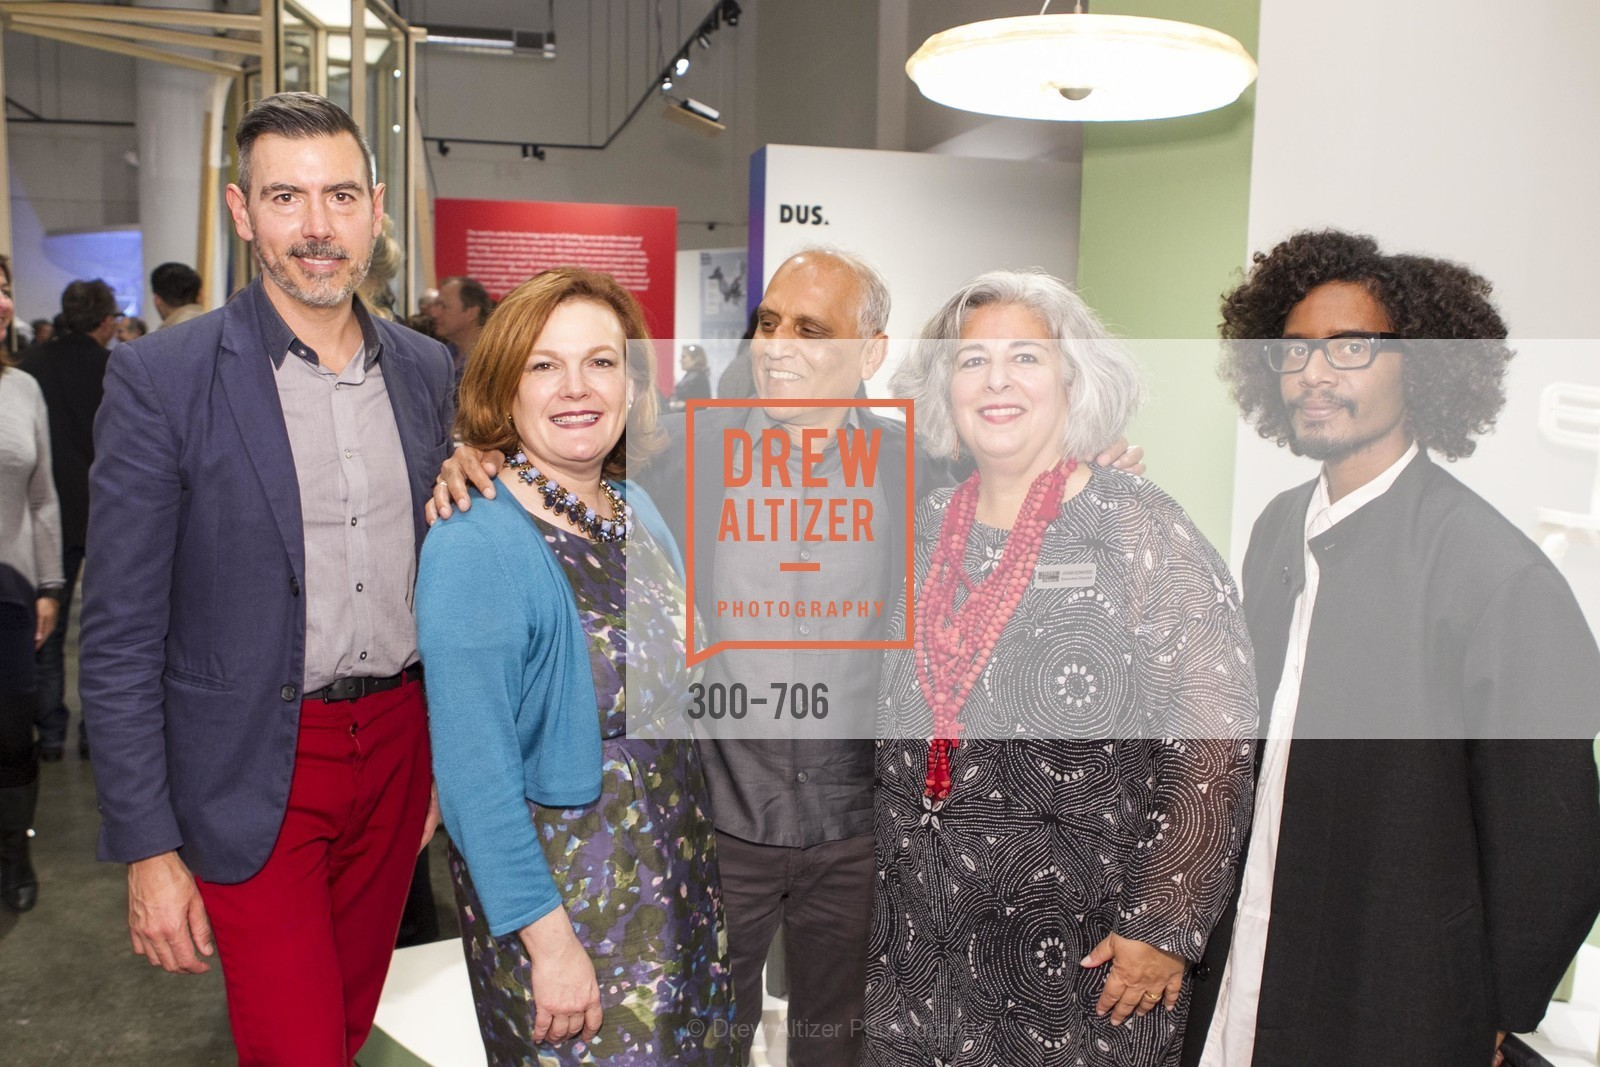 John Macy, Jennifer Raiser, Zahid Sardar, JoAnn Edwards, Yani Alexi Dominguez, Exhibit Opening at the MUSEUM OF CRAFT AND DESIGN - Hands Off: New Dutch Design at the Confluence of Technology & Craft, US, May 8th, 2015,Drew Altizer, Drew Altizer Photography, full-service agency, private events, San Francisco photographer, photographer california